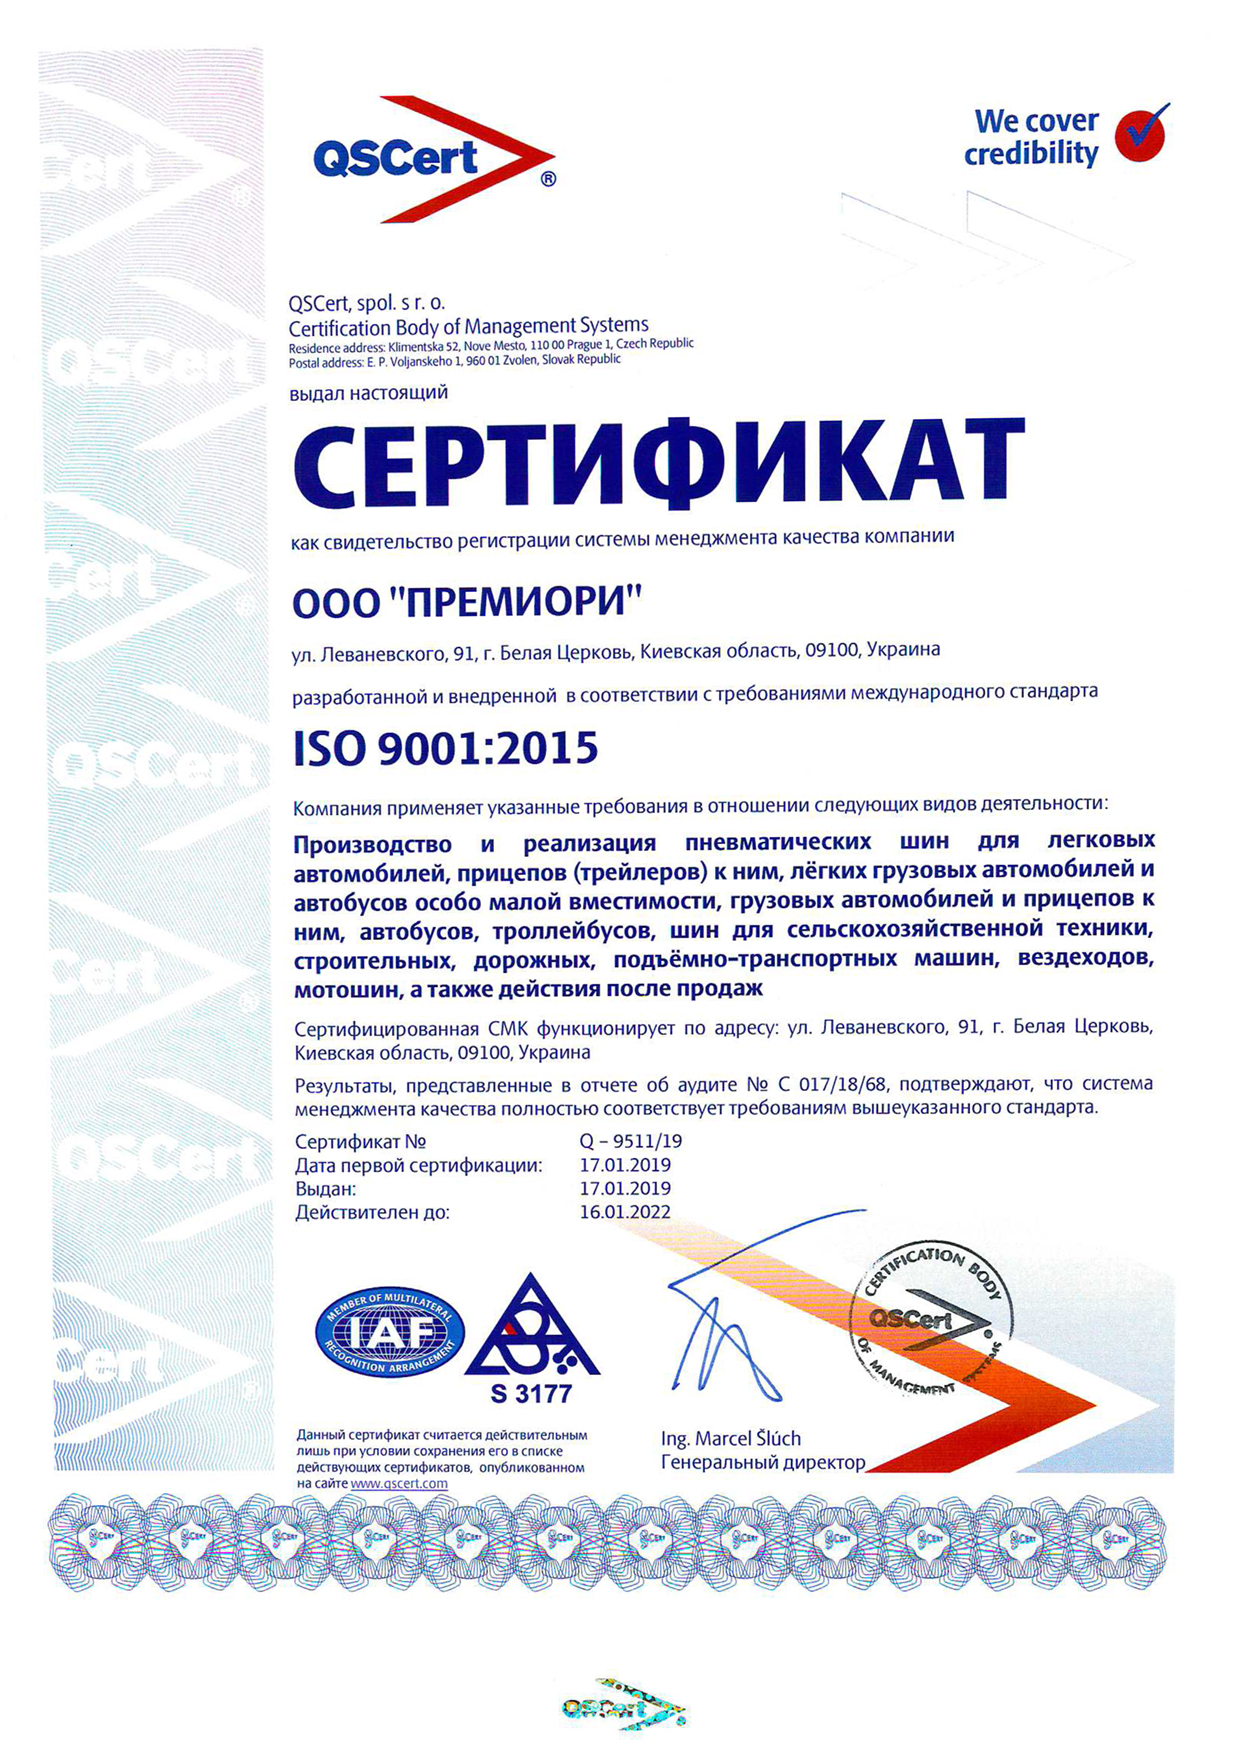 EXAMPLE: Certificate ISO 9001